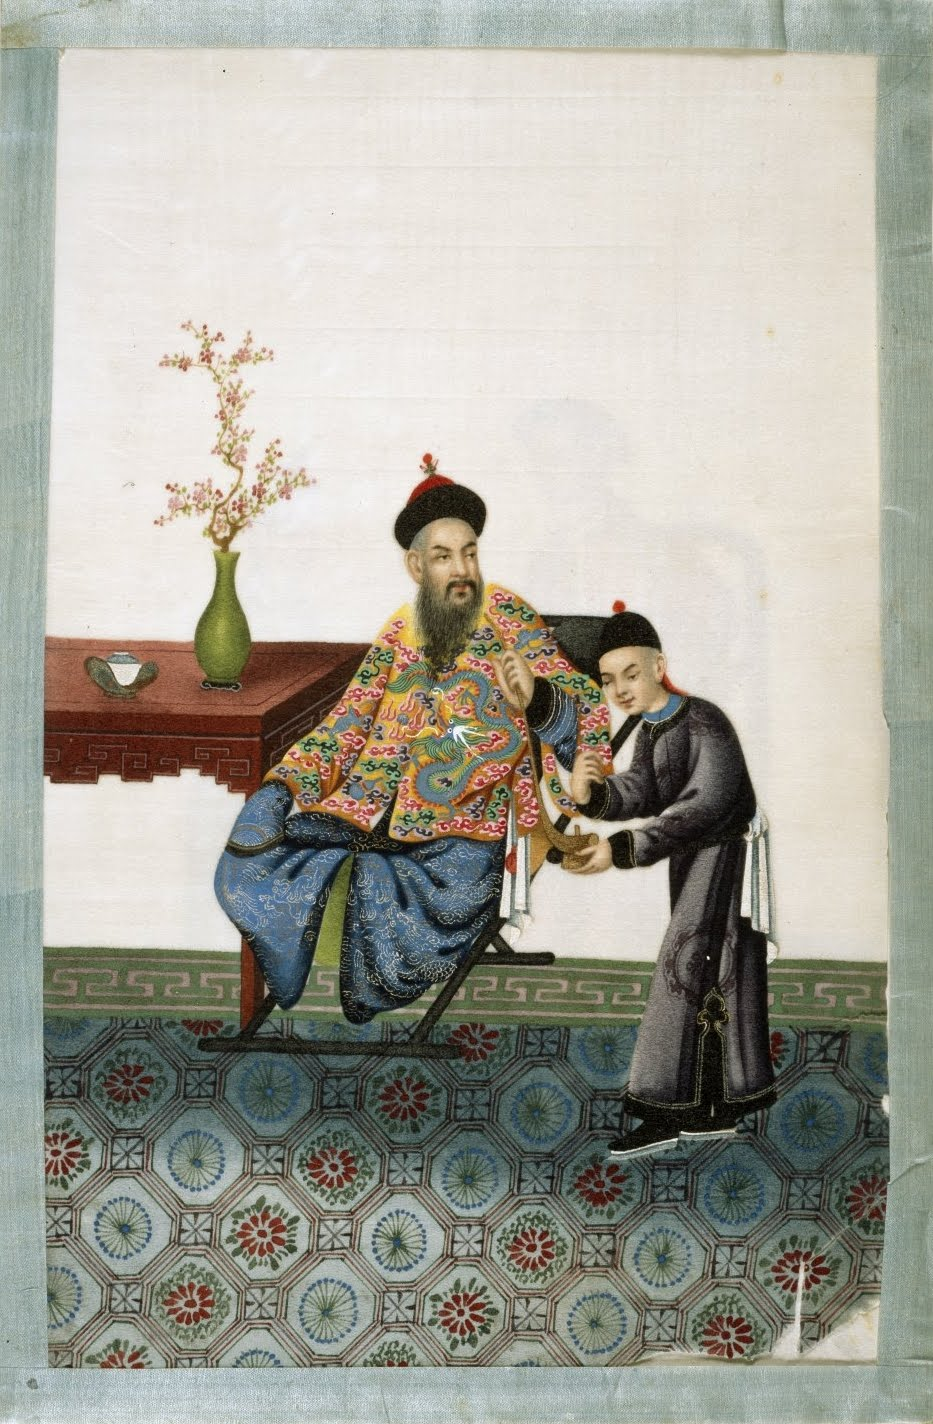 noble Chinaman and court attendant